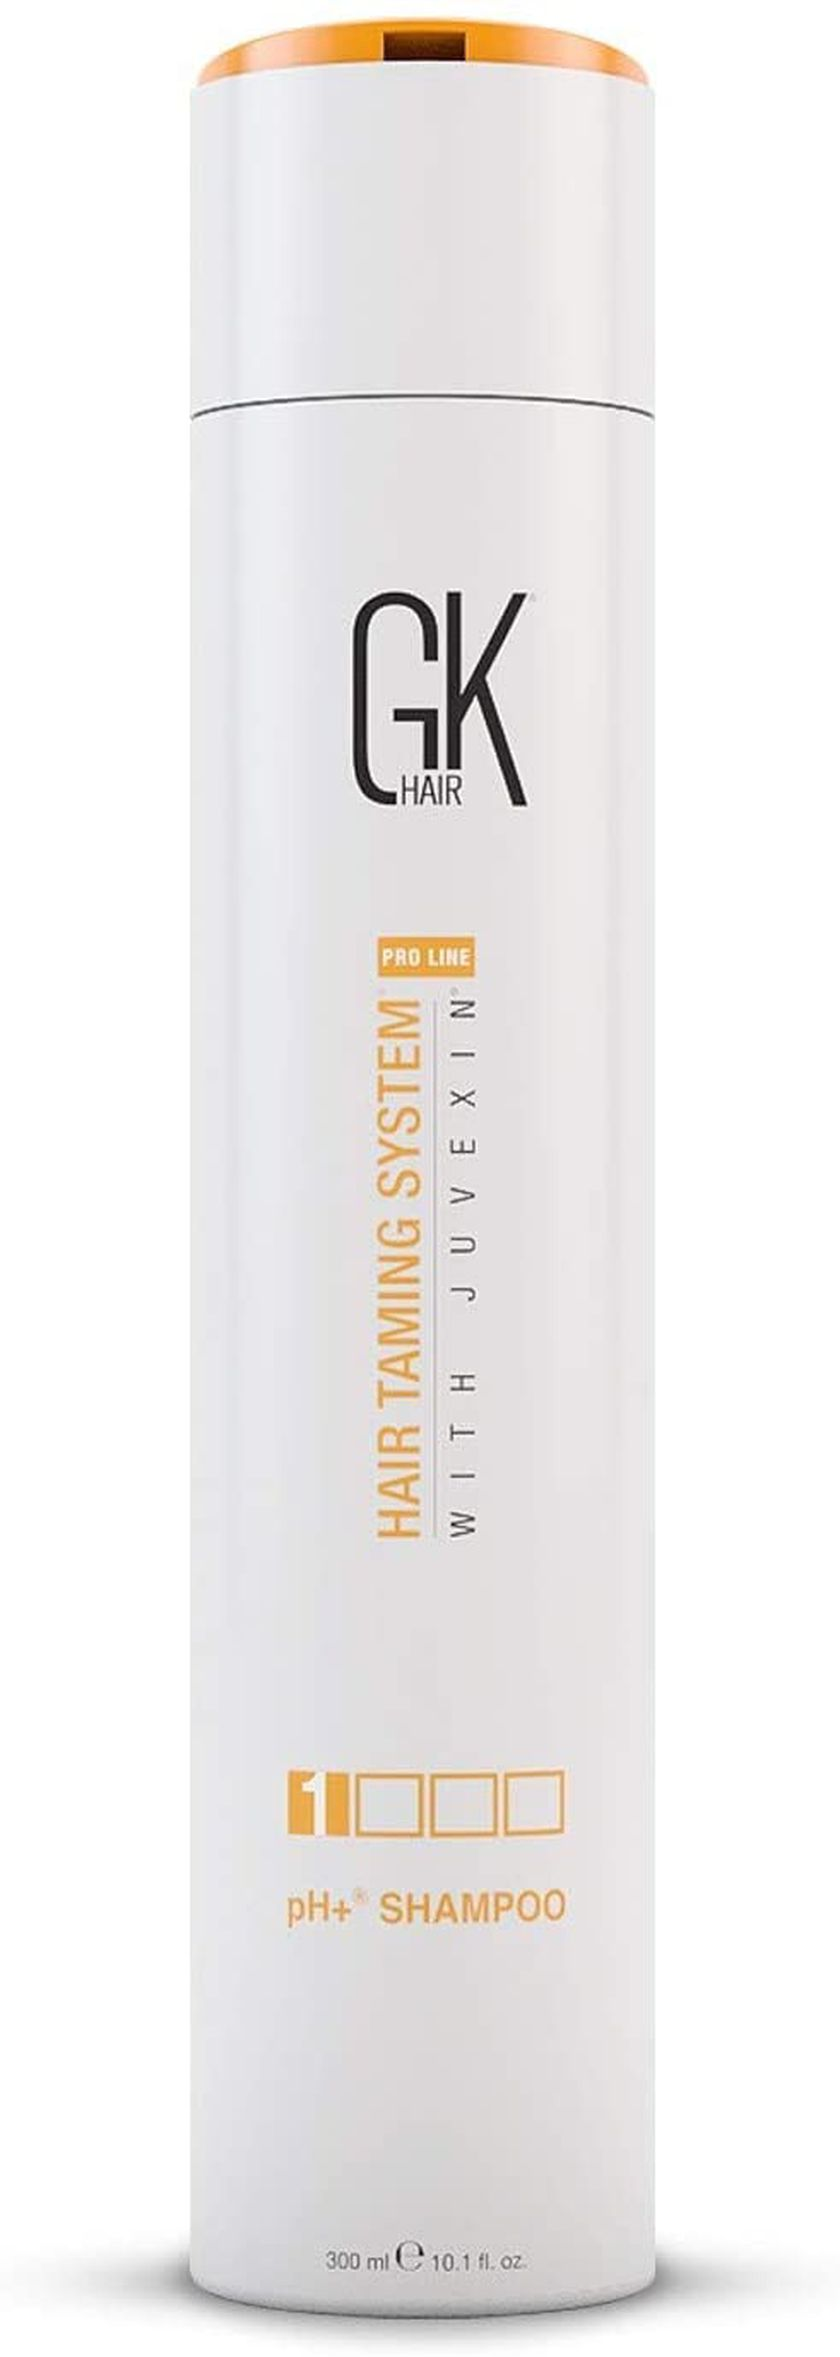 Tratamiento pelo liso: Global Keratin GK Hair pH + Champú clarificante